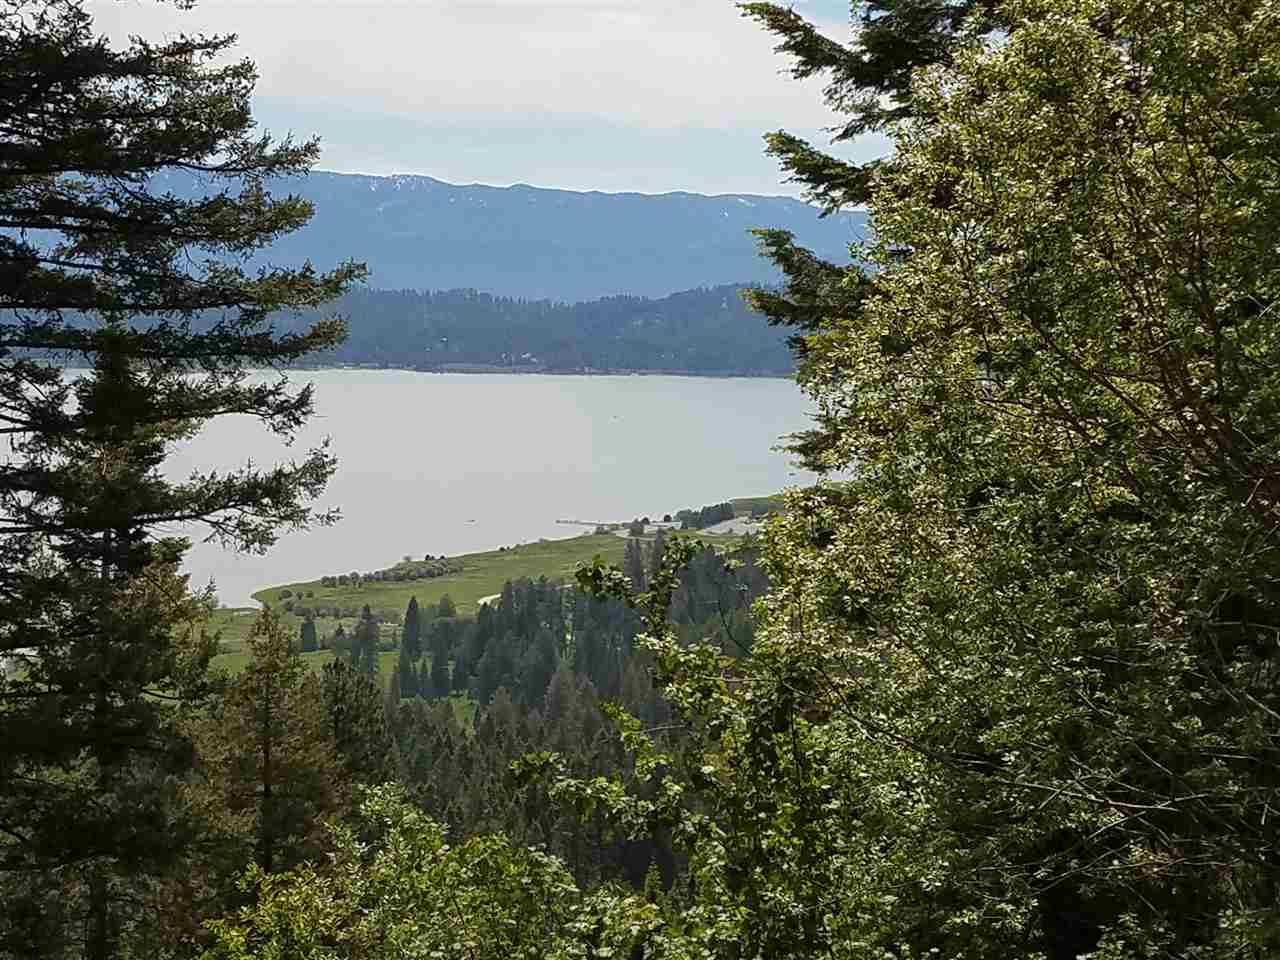 Own Your Own Mountain in Idaho's Premier Recreation, Surrounded by National Forest, Incredible Views of Lake Cascade, Incredible Snowmobile and ATV Trails, Access to Idaho's finest Snowmobiling. Surveyed into 22 Parcels, all 20-23 Acre Parcels, Multiple Live Year-round Streams, Hyro-Generating Power Feasibility Study on file. Validated Public roads 435P and 435P1 . This is for the entire Mountain.